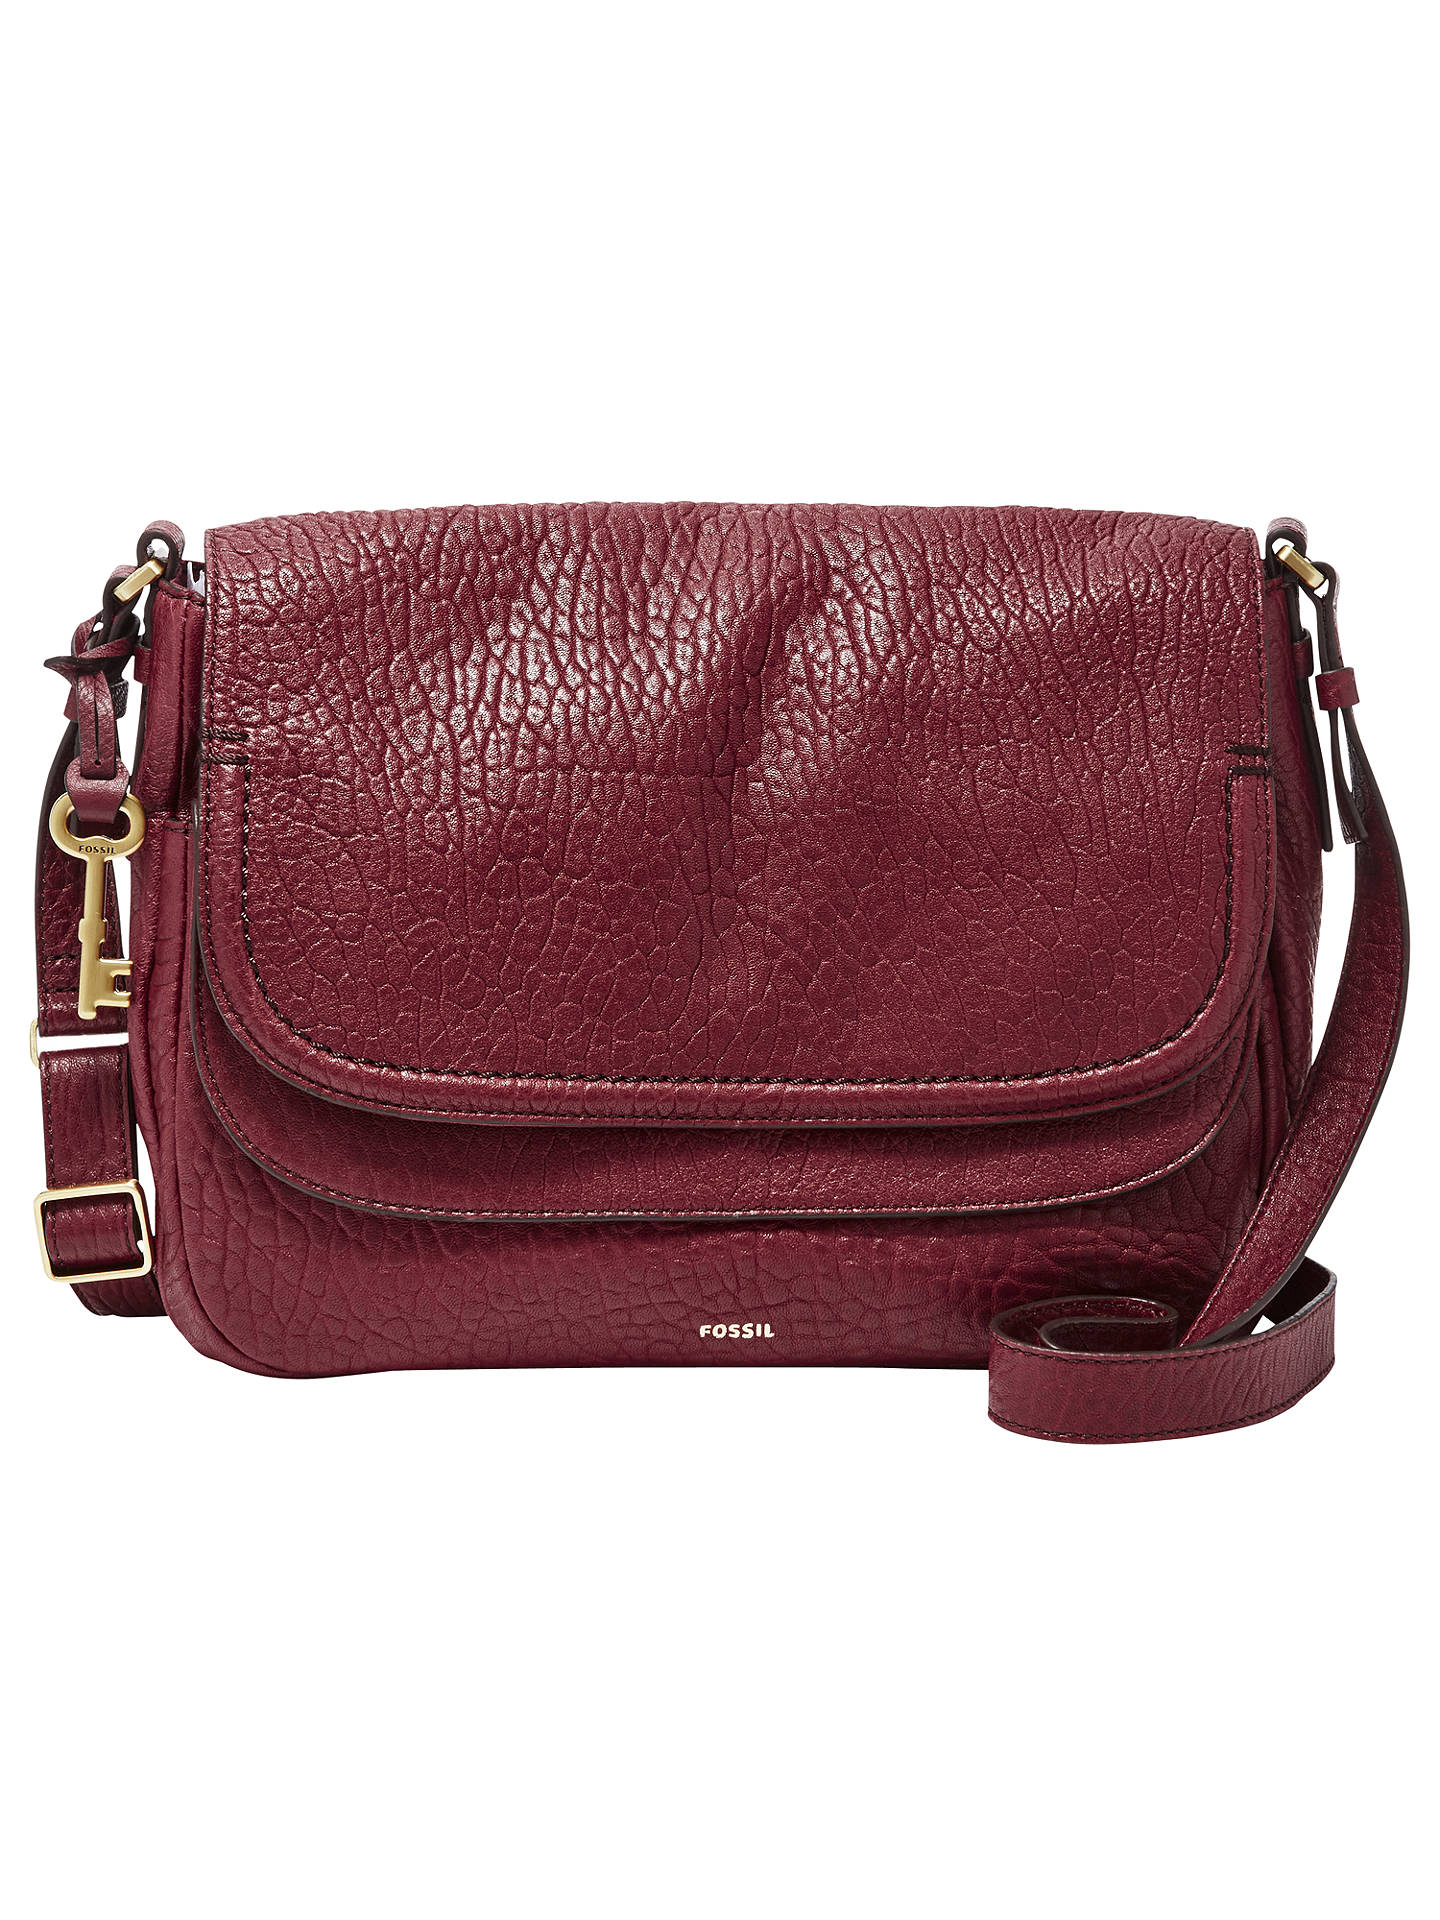 91edfe04edd Buy Fossil Peyton Large Leather Double Flap Across Body Bag, Wine Online at  johnlewis.